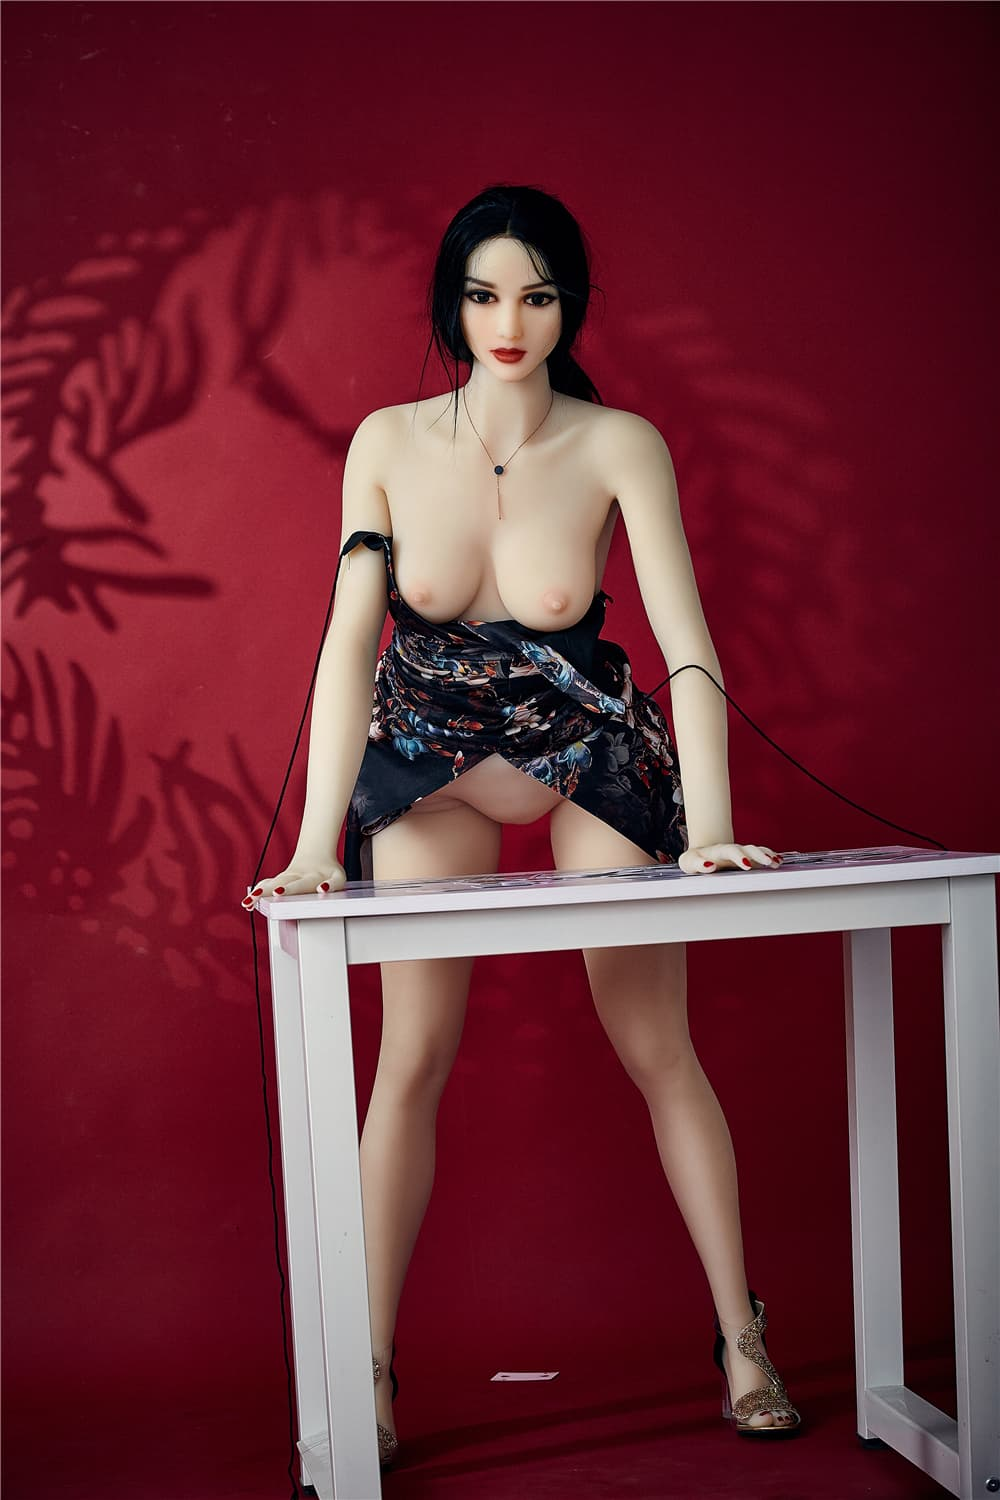 bonita 168cm black hair athletic flat chested tpe sex doll(9)